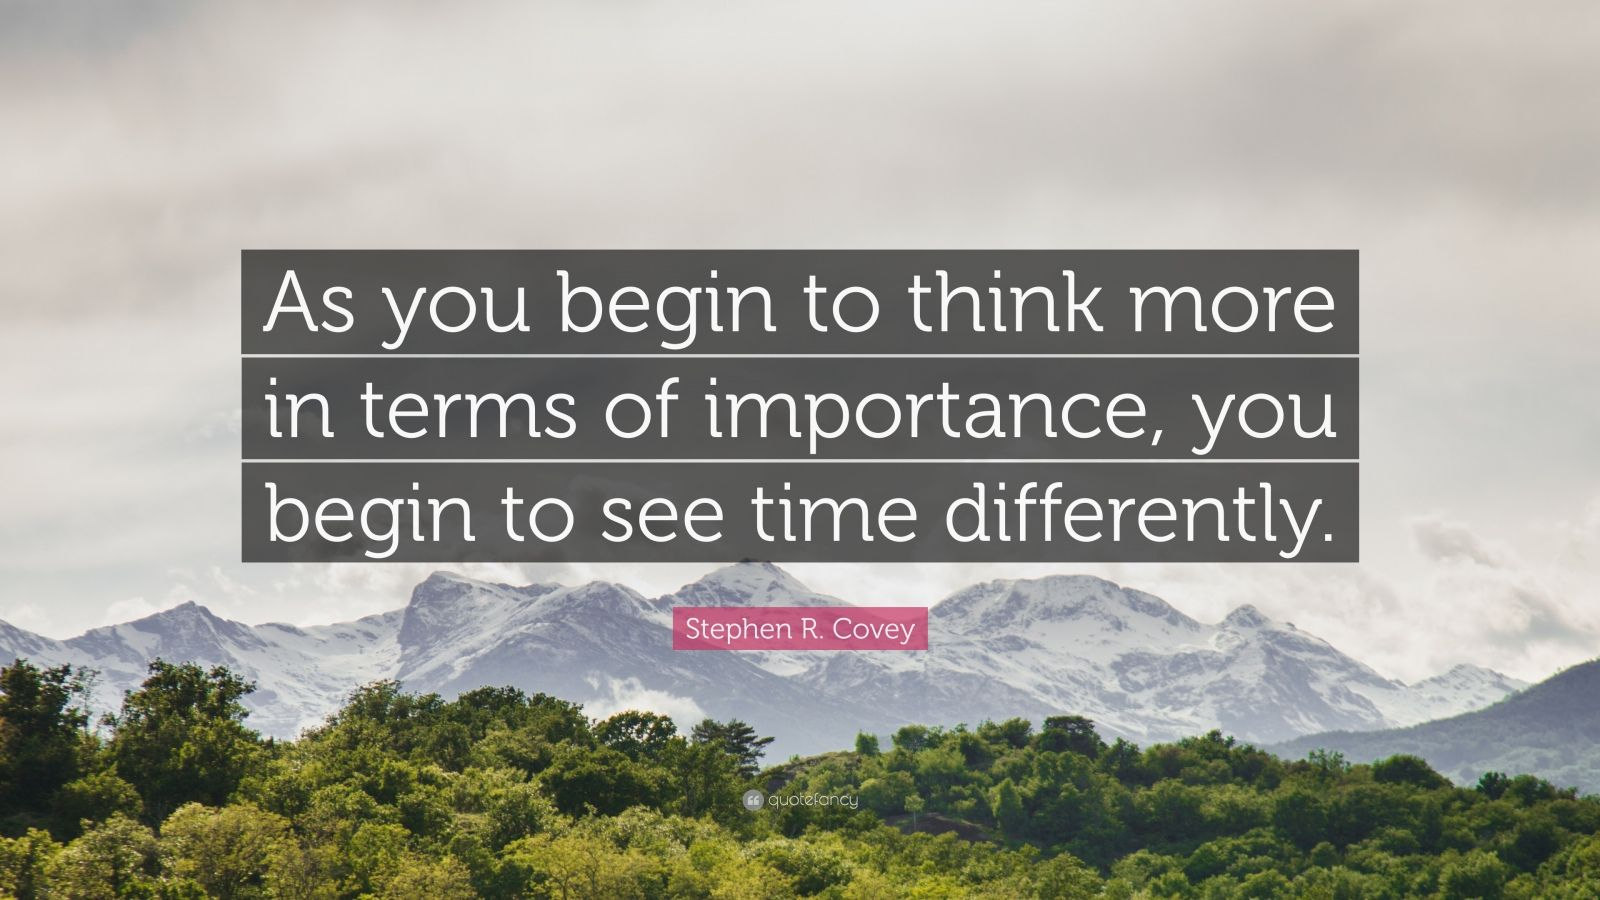 """Stephen R. Covey Quote: """"As you begin to think more in terms of importance, you begin to see time differently."""""""